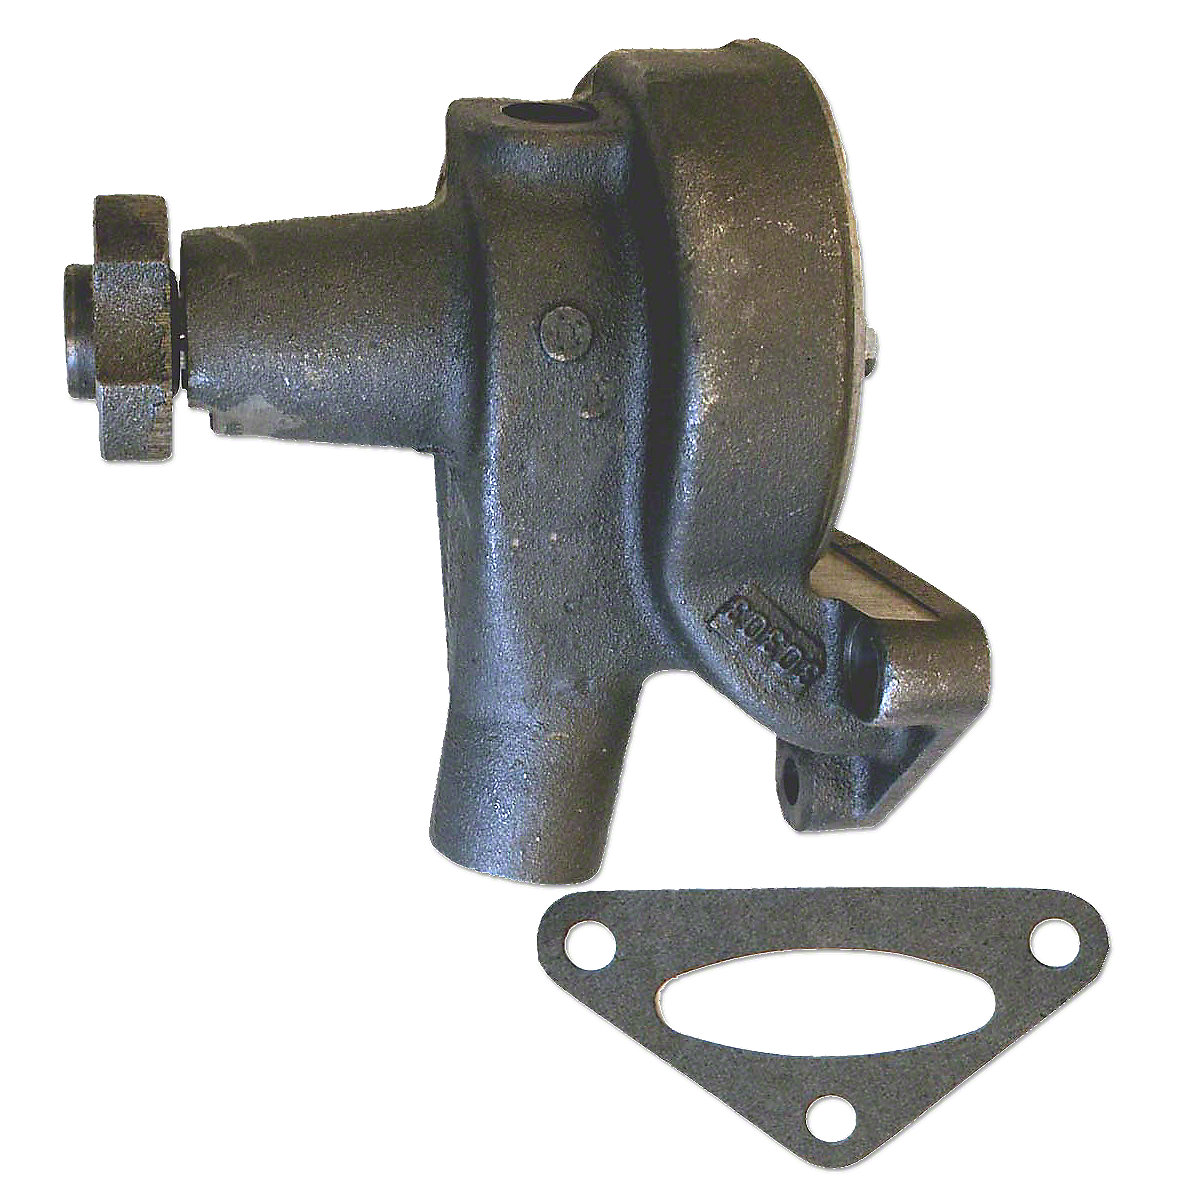 New Water Pump For Allis Chalmers: WC, WD, WD45, WF Gas Tractors.